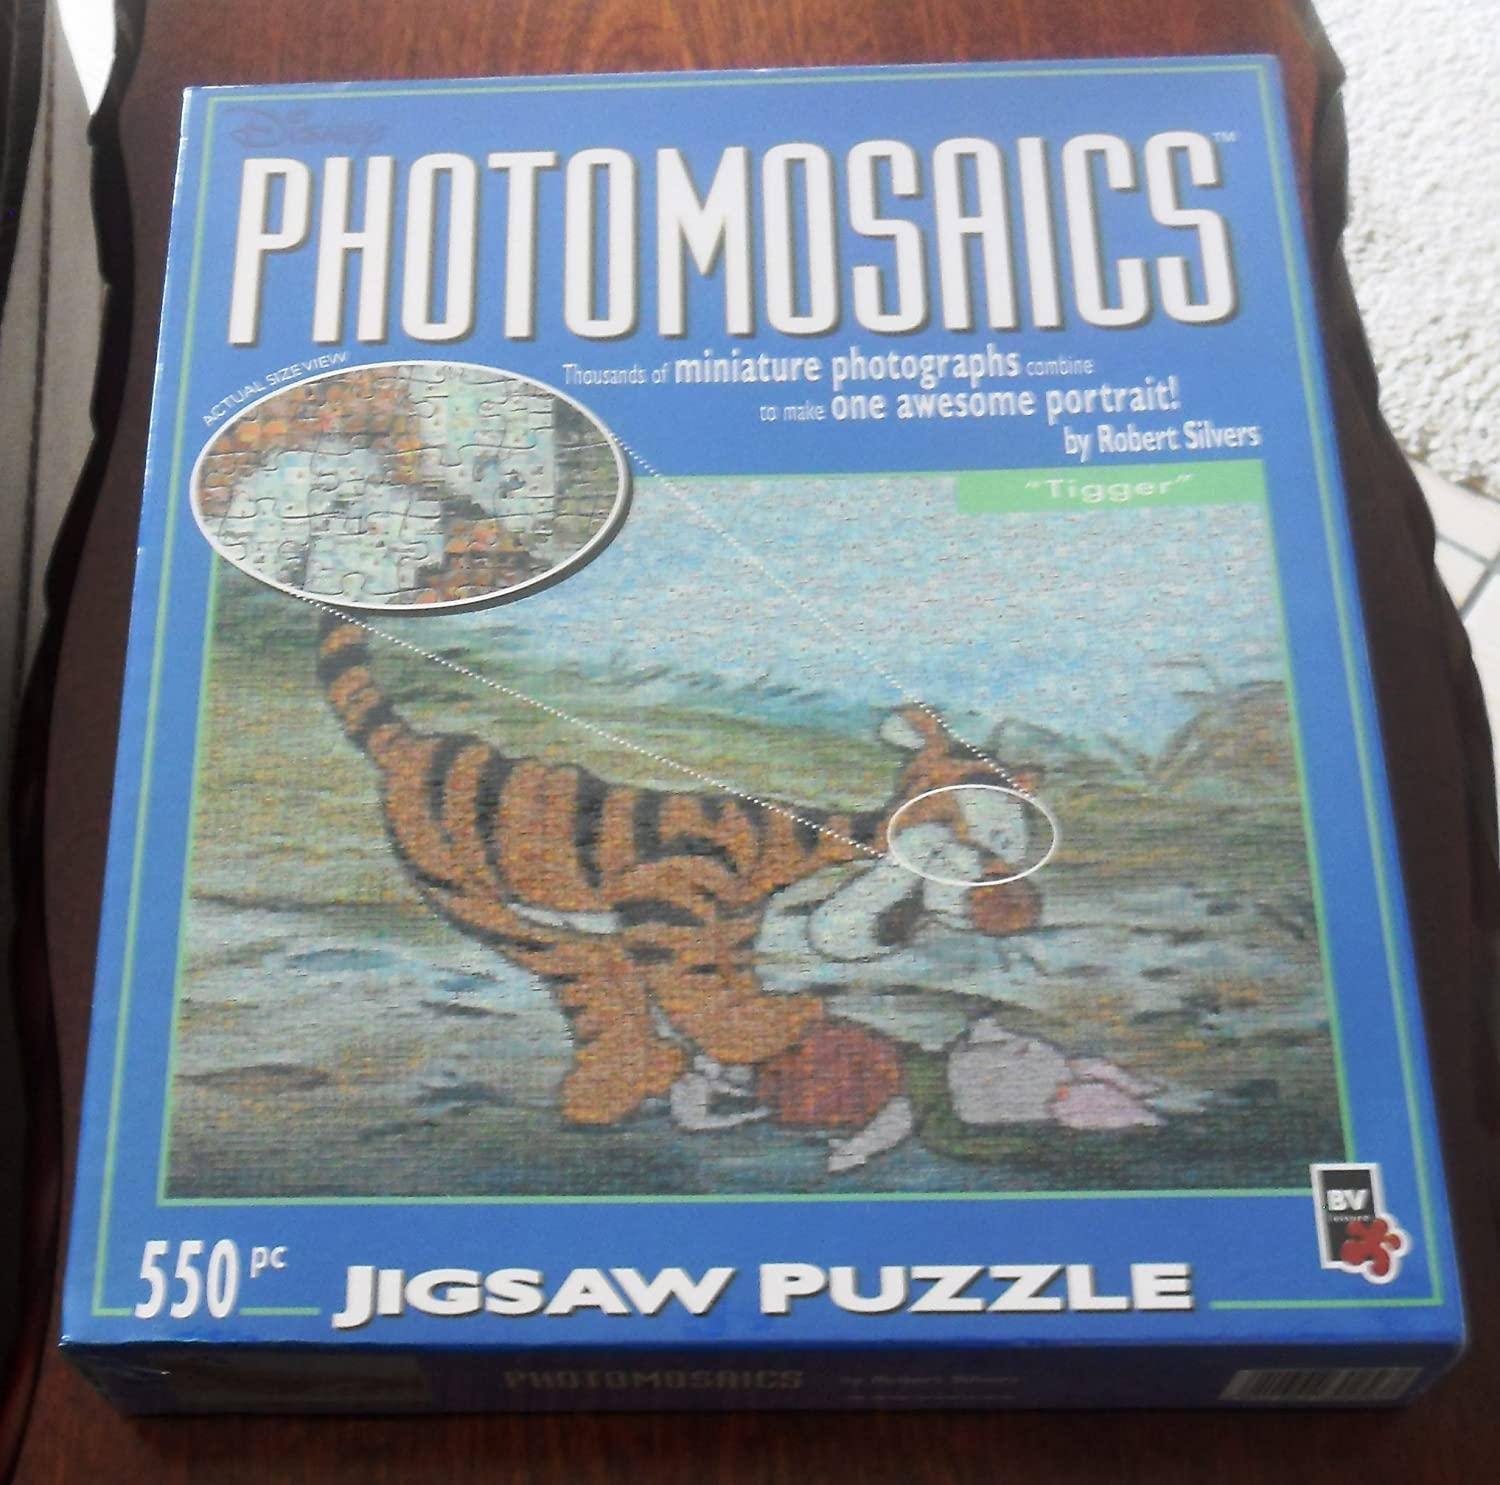 PHOTOMOSAIC 550 PIECE PUZZLE TIGER BY ROBERT SILVERS by BV LEISURE Forniture per l'istruzione